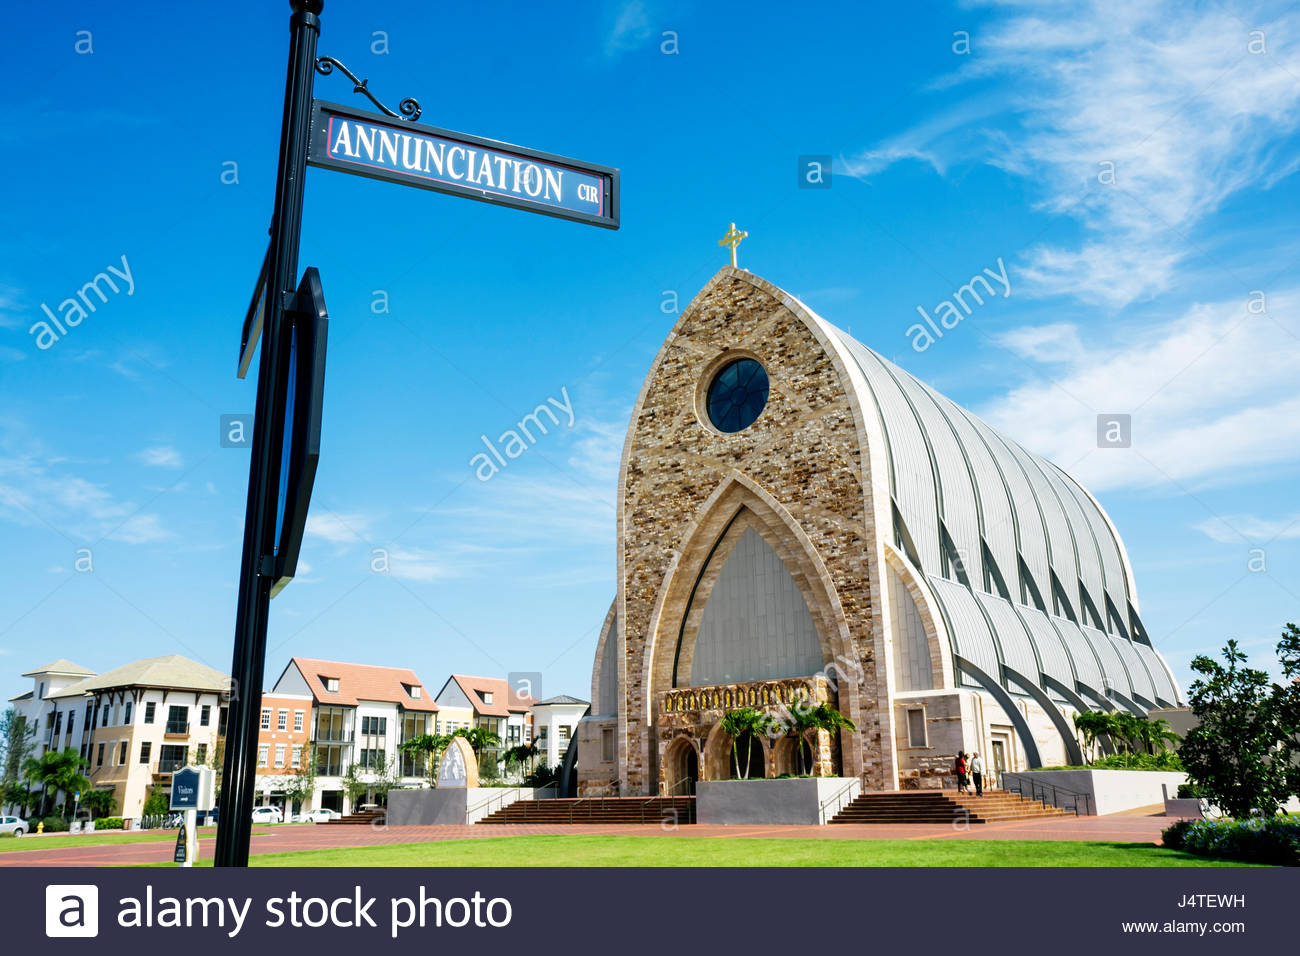 Naples Florida Ave Maria planned community college town Roman Catholic university Christian religion Tom Monaghan - Stock Image